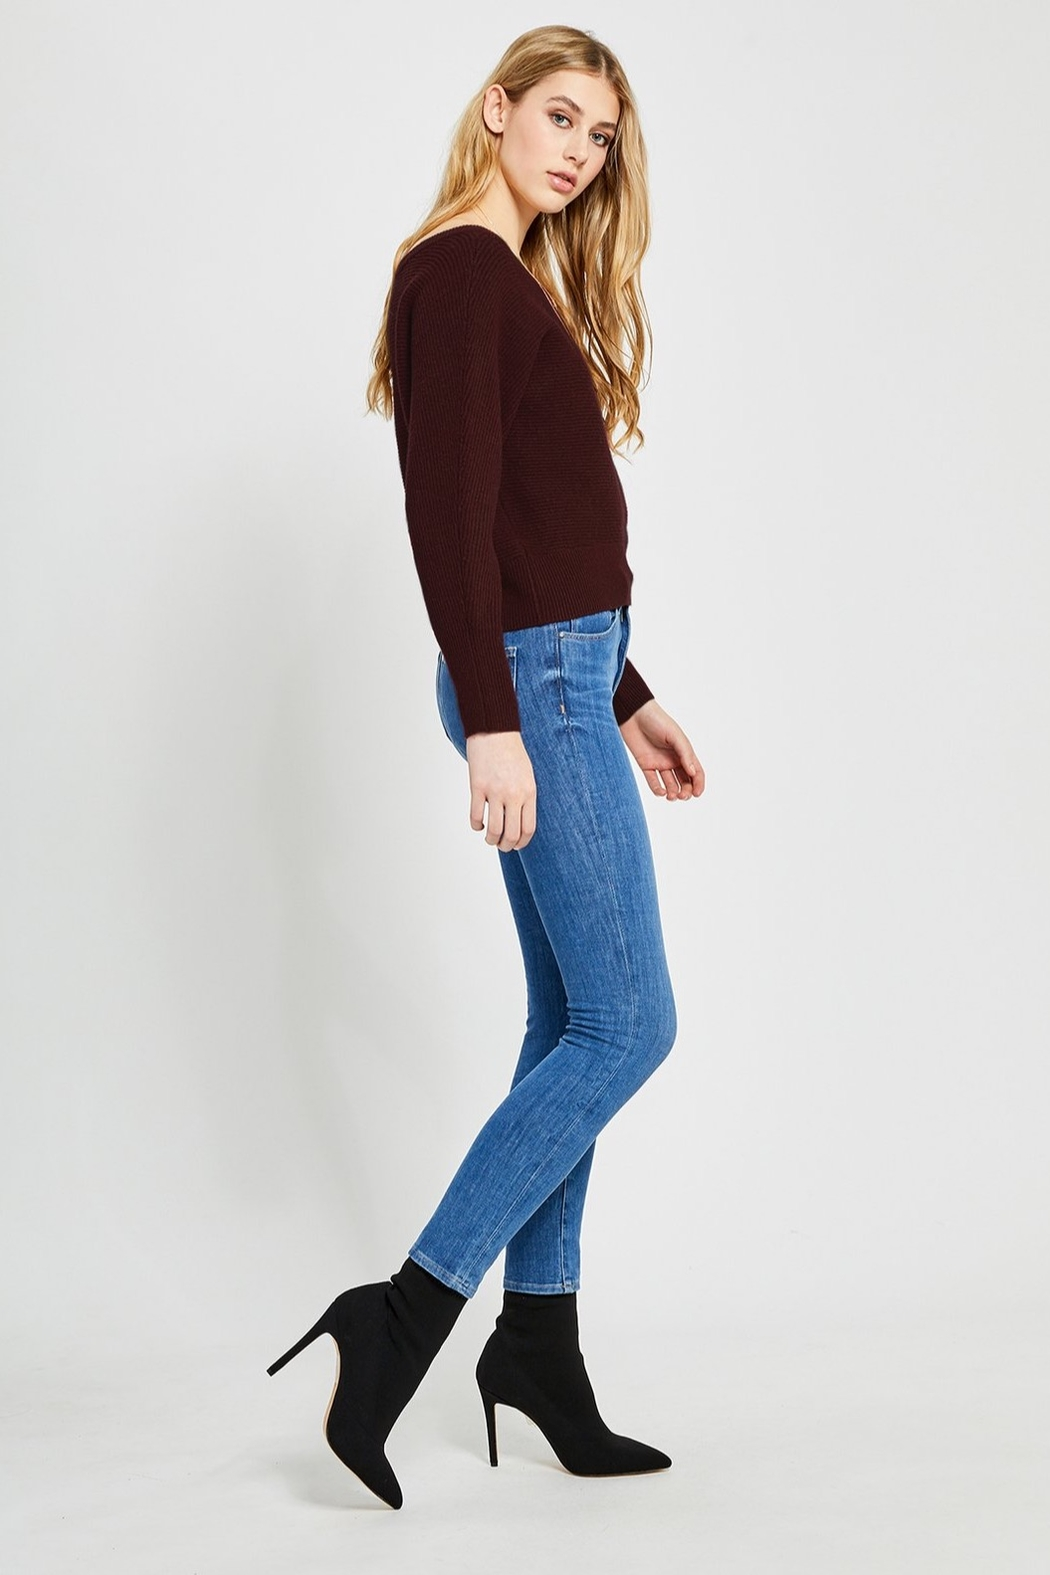 Gentle Fawn Camillo Off Shoulder Sweater - Front Full Image